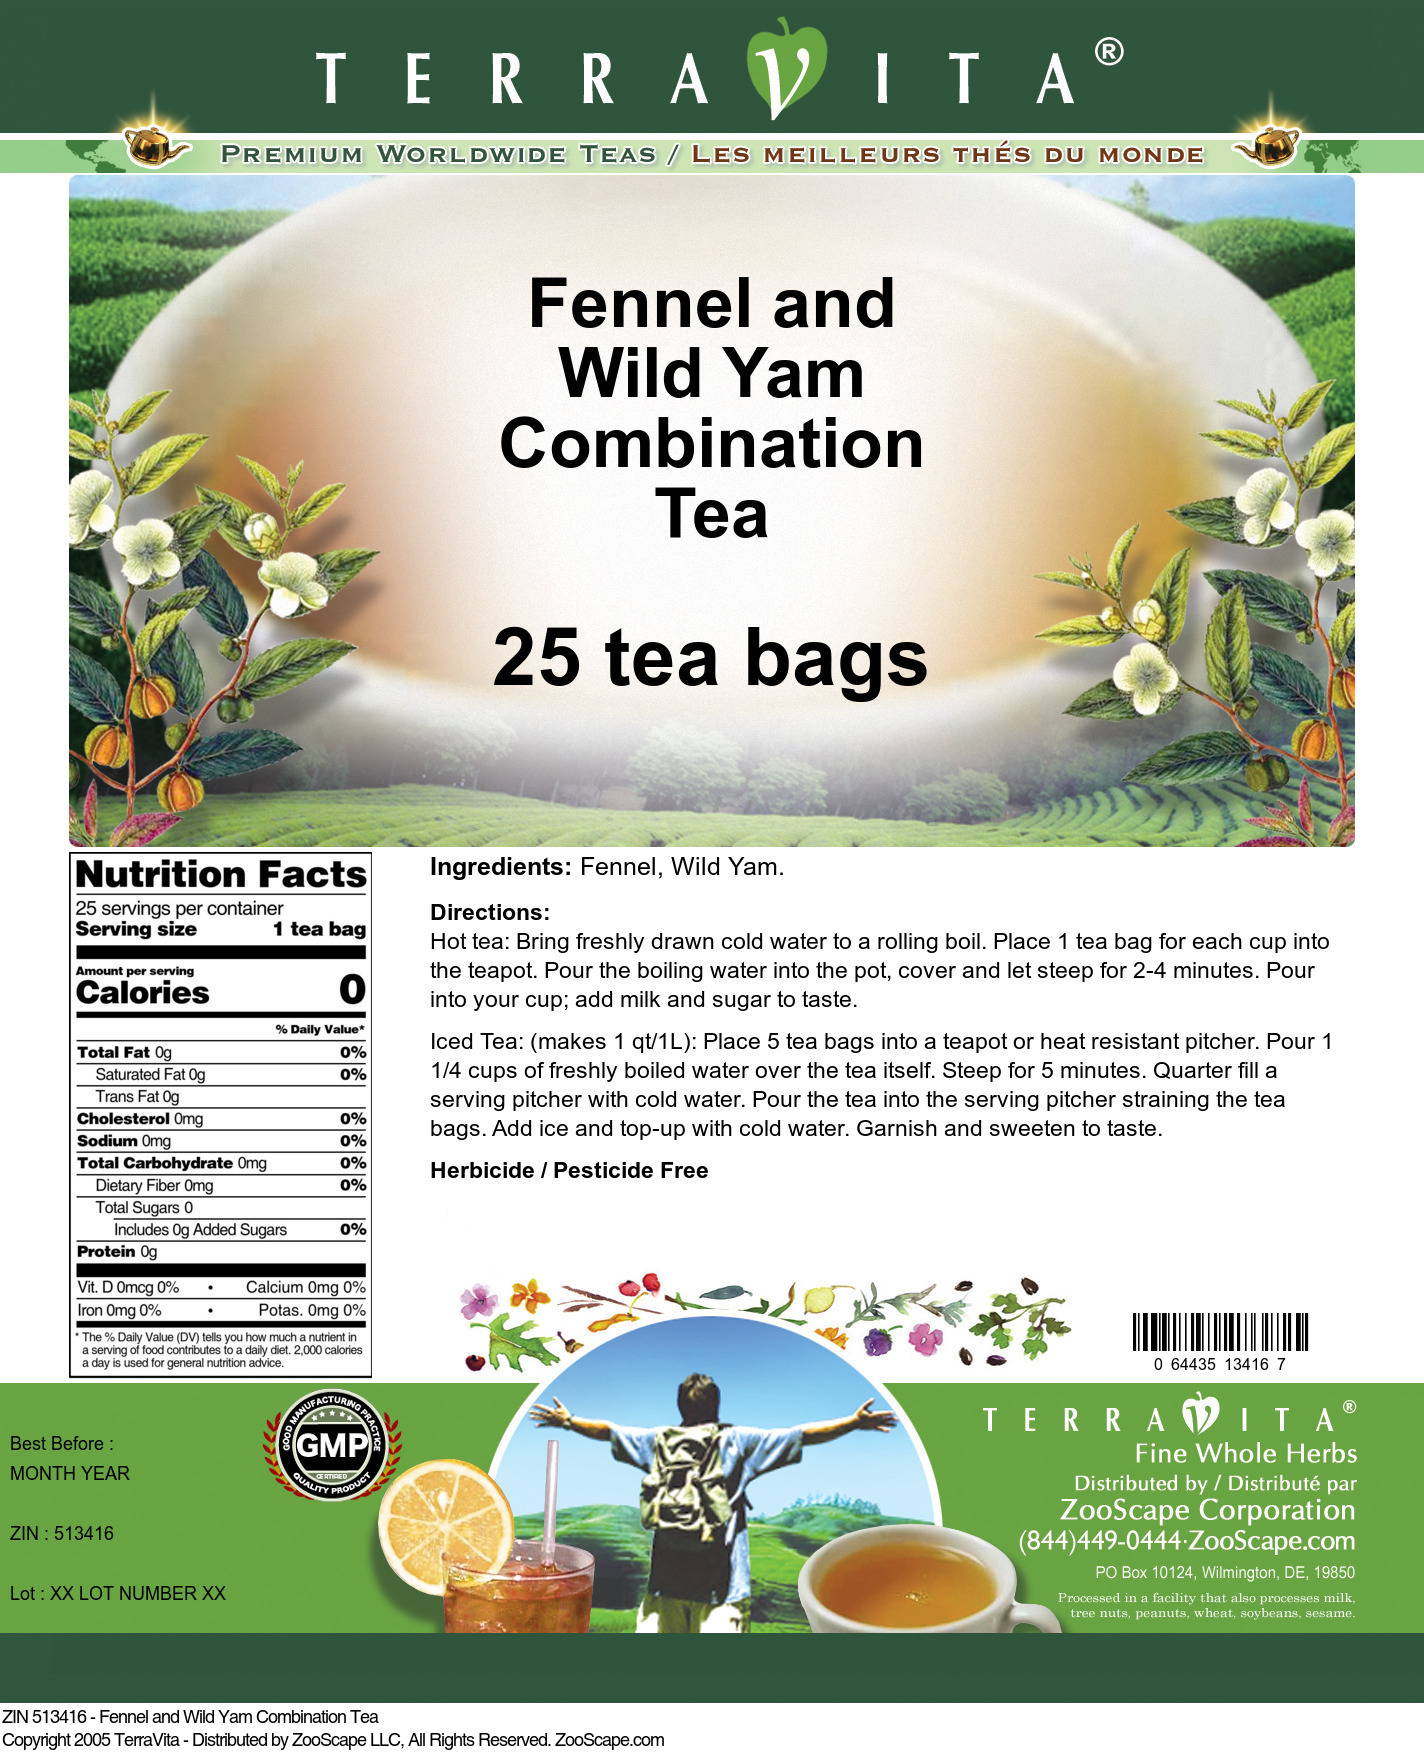 Fennel and Wild Yam Combination Tea